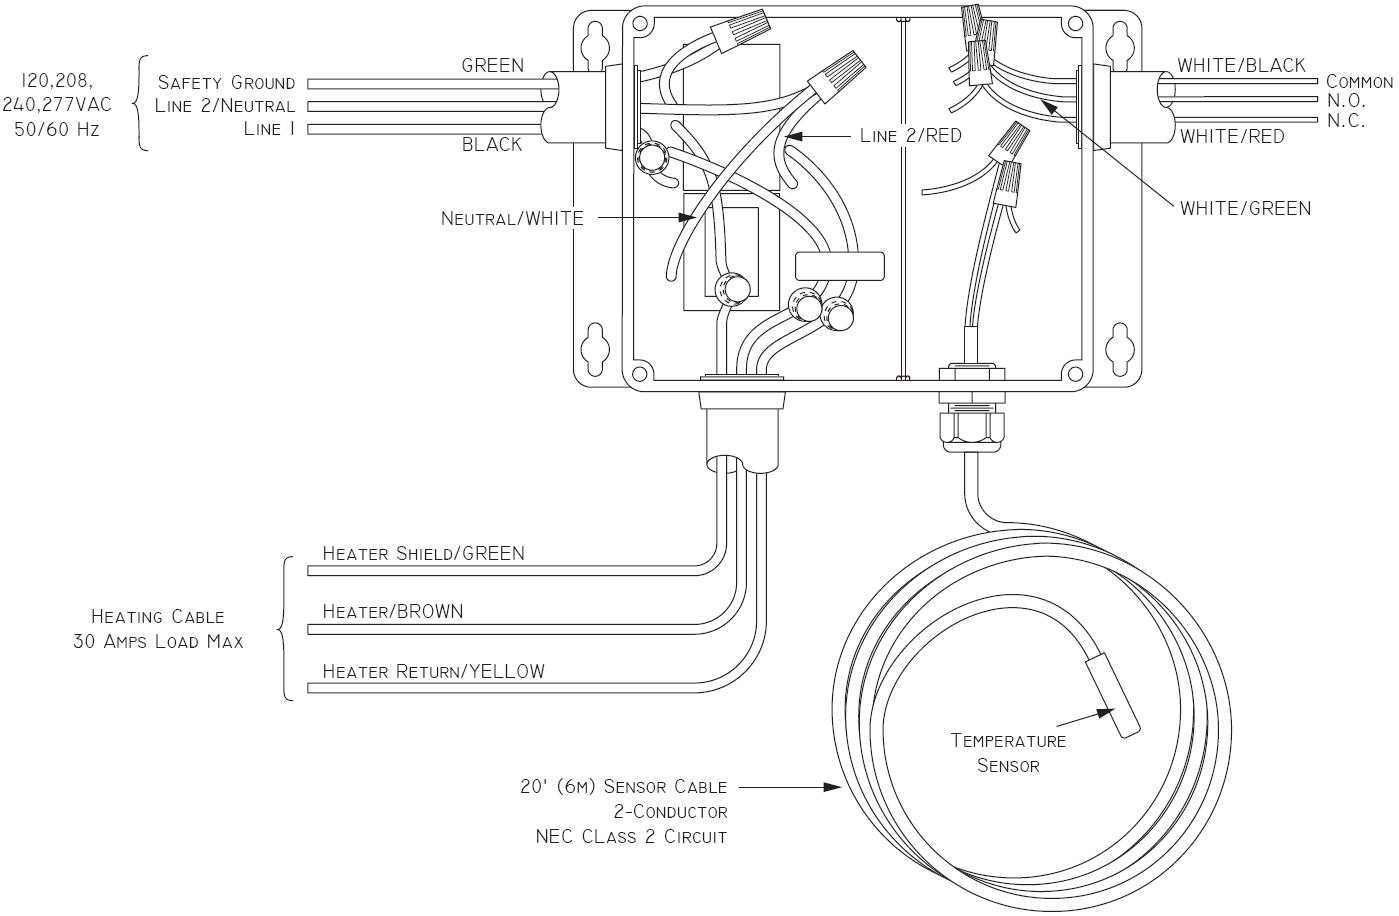 Heater Wiring Schematics Newair G Wiring Diagram Newair